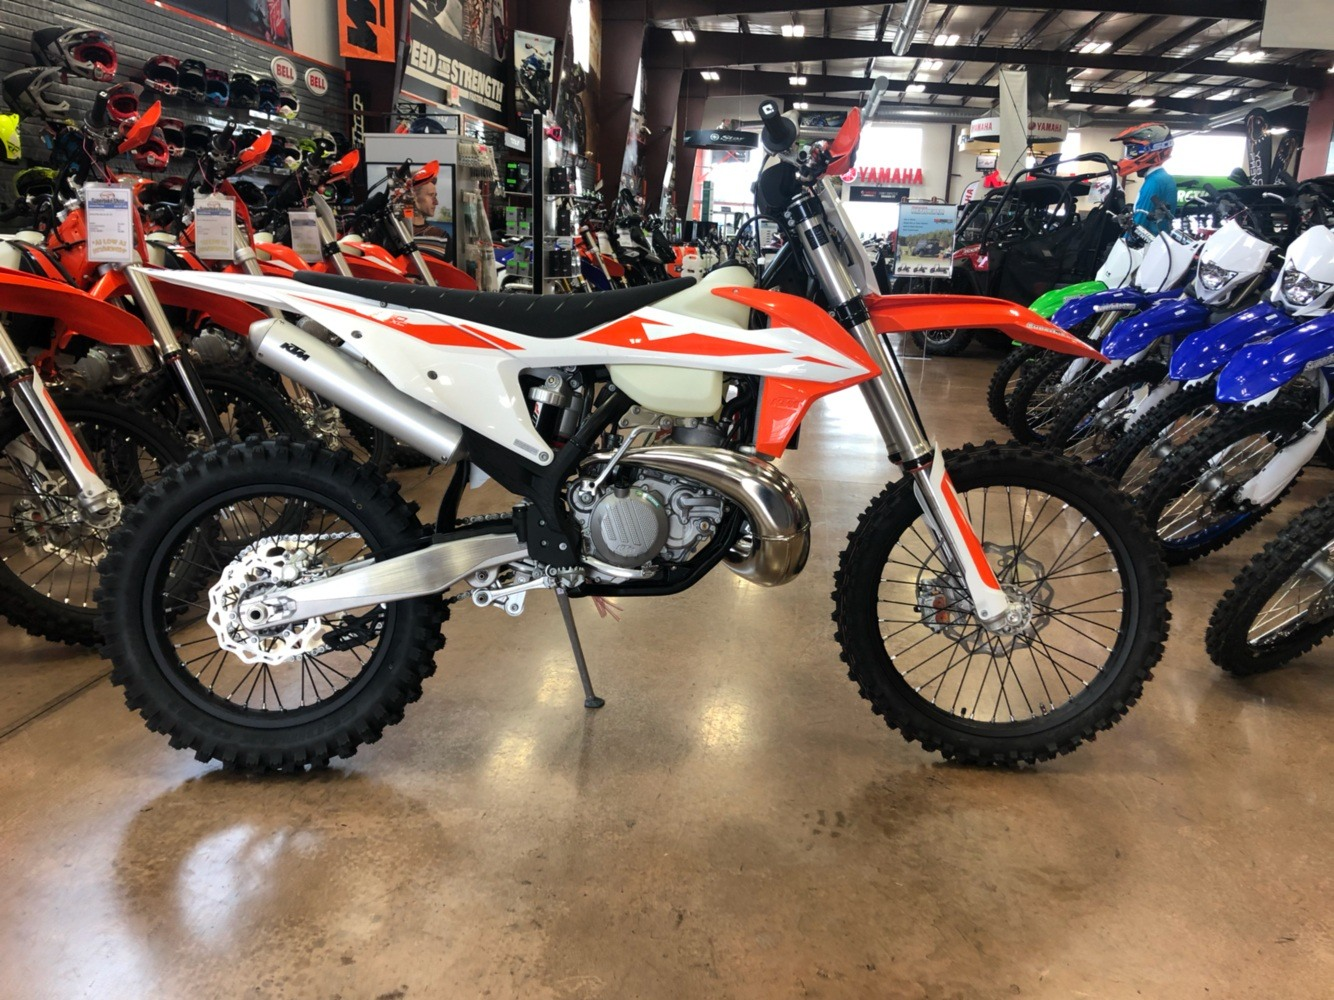 2019 KTM 250 XC for sale 972